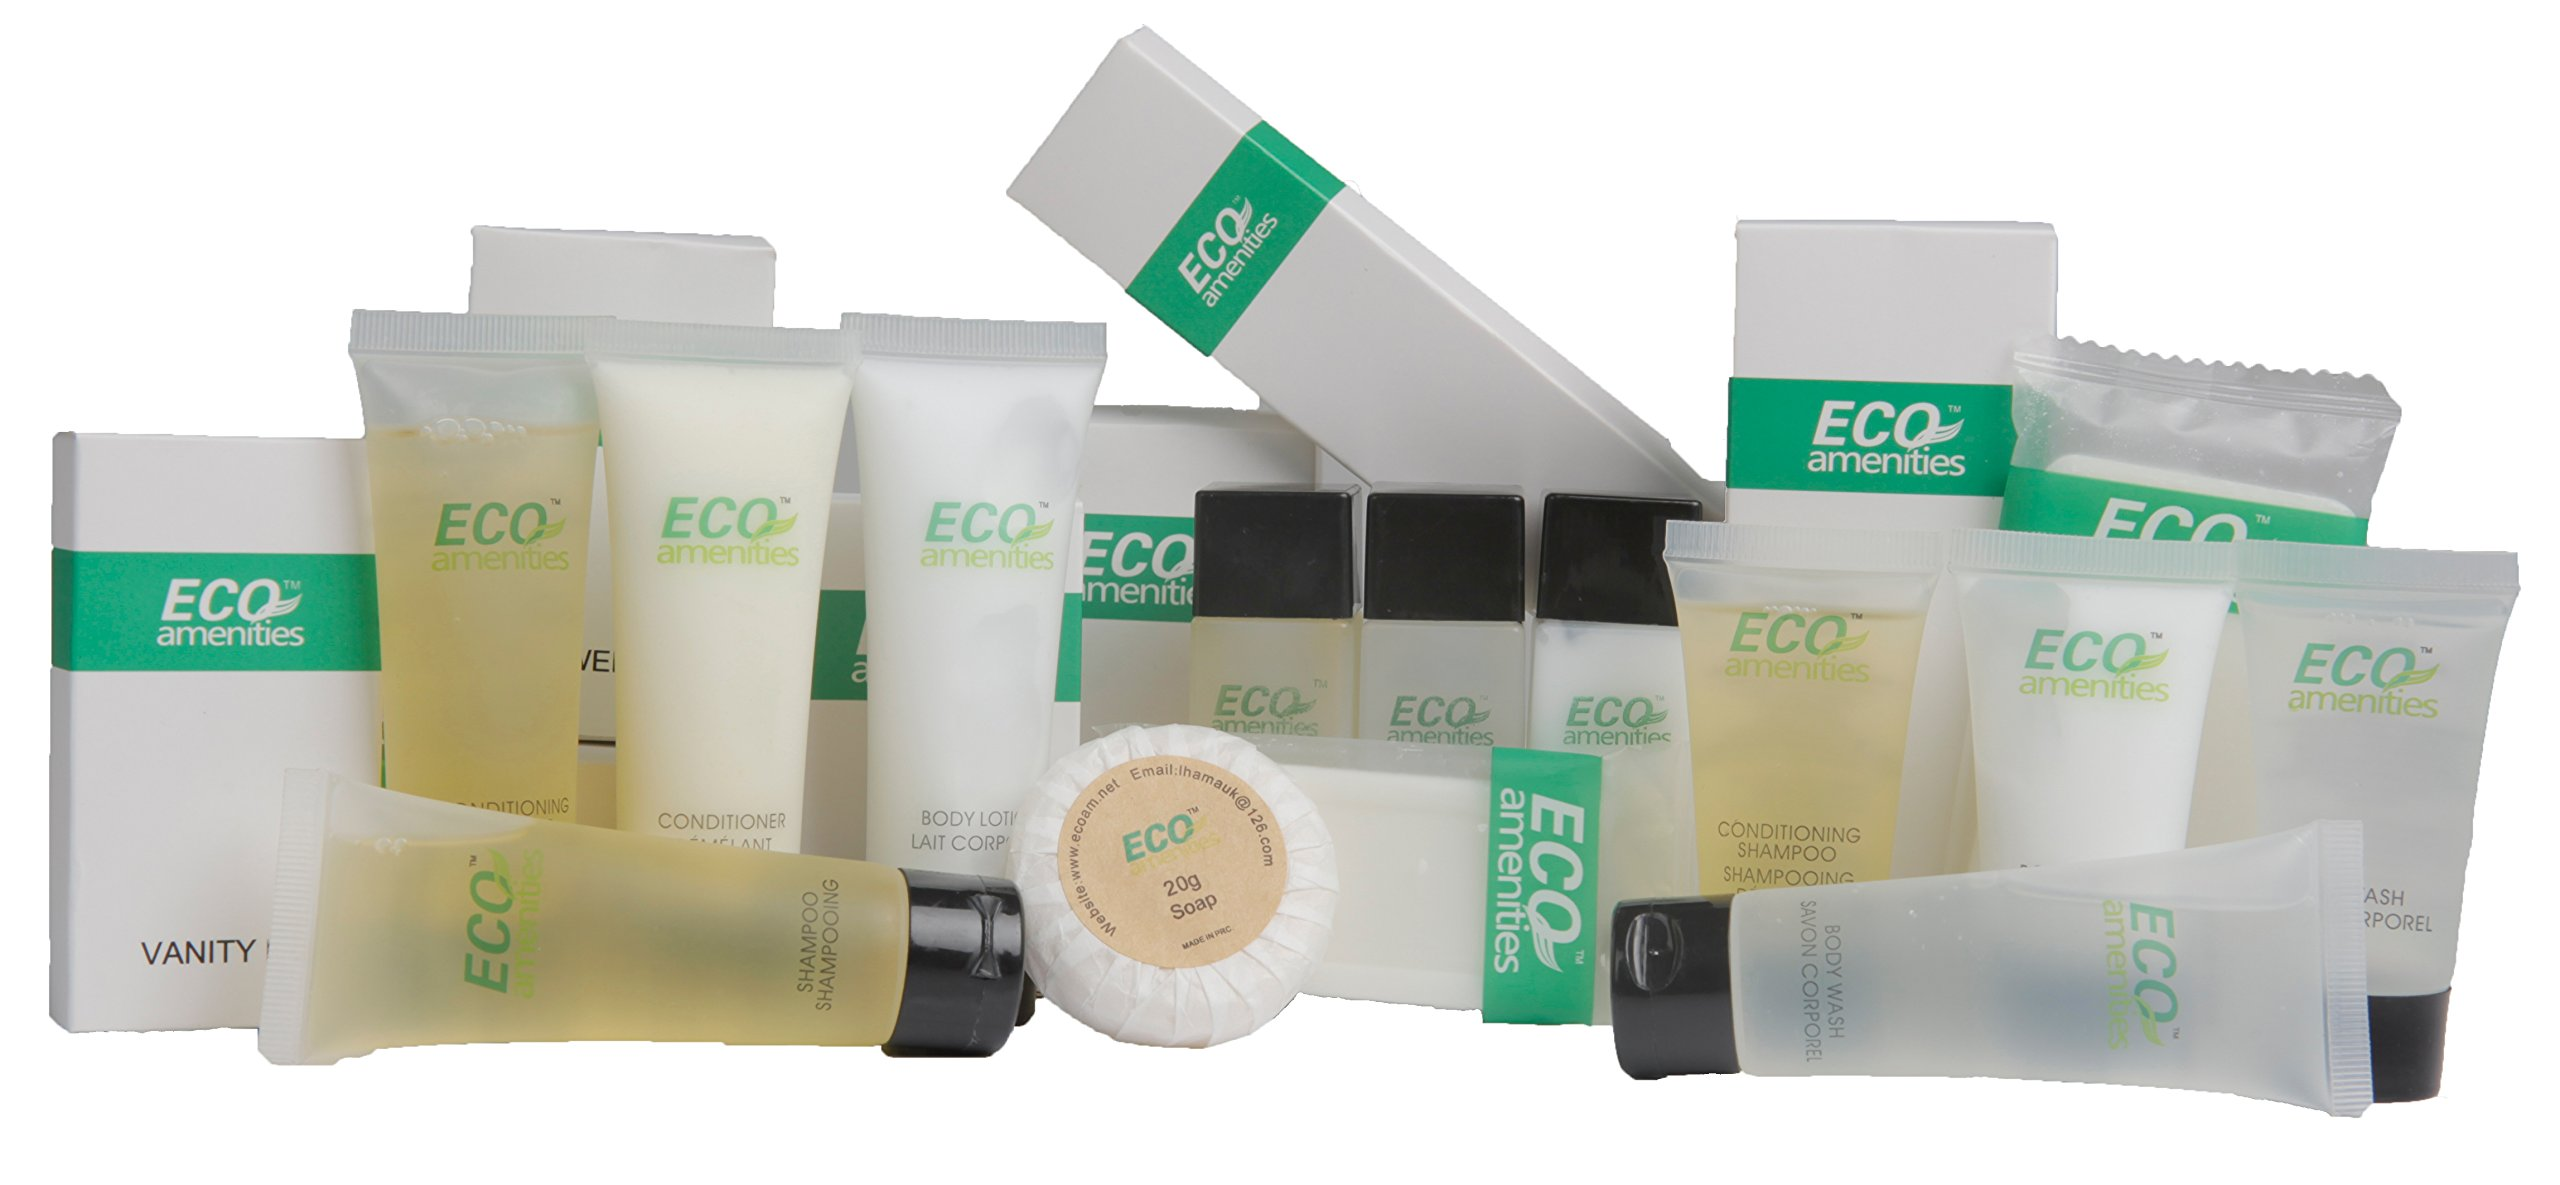 Flip Cap Tube Body Lotion - ECO products 1